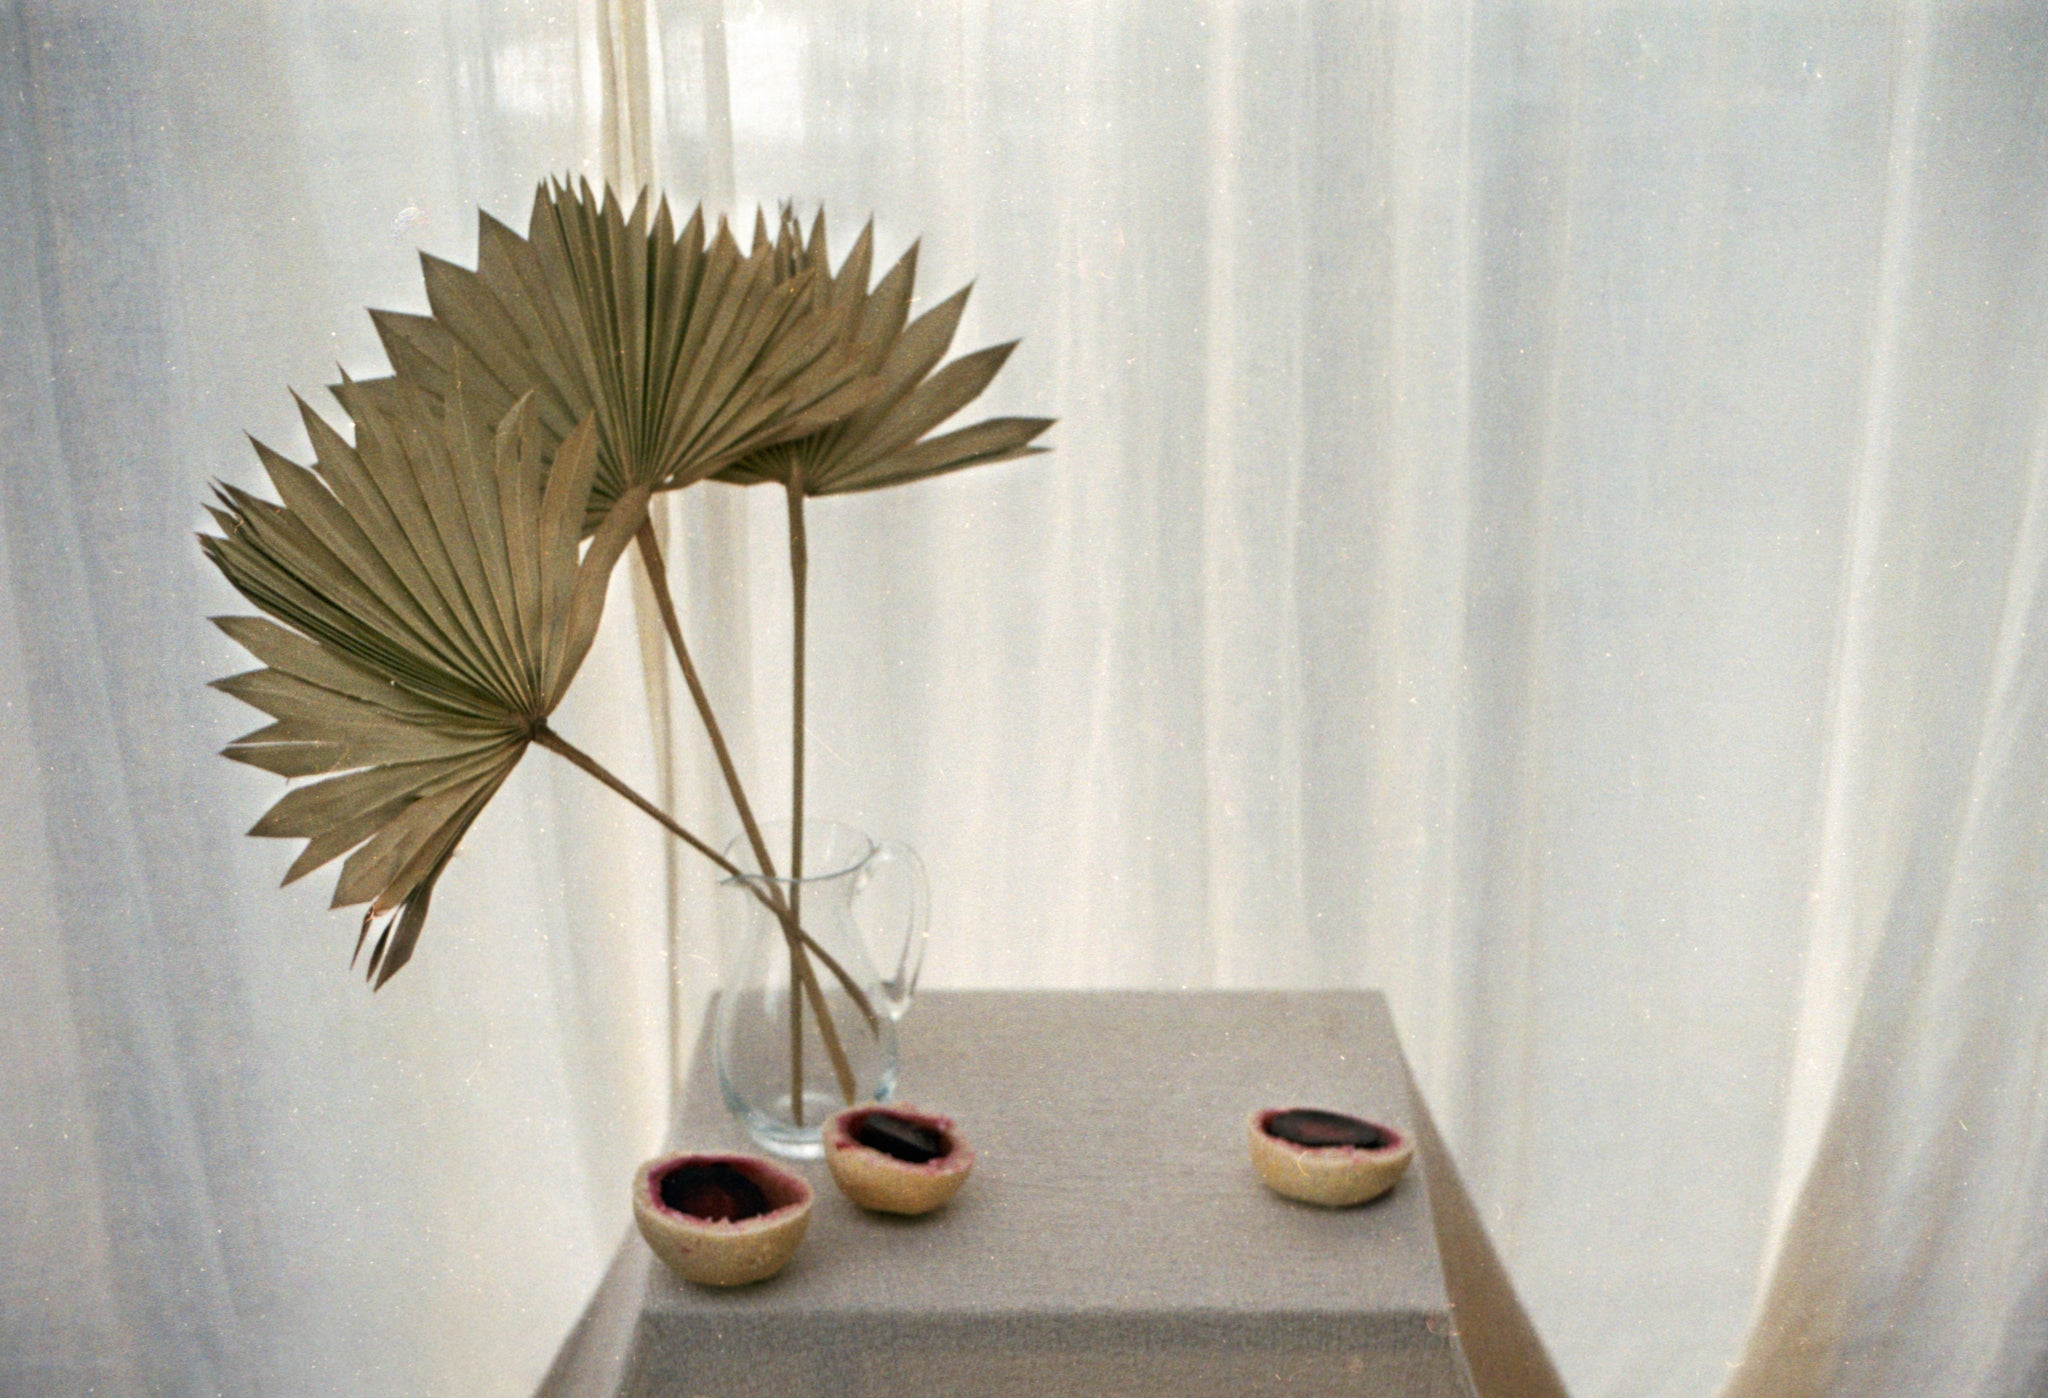 Table with pampas grass in a clear glass vase and slow roasted salt baked beetroot on a table. Photography 0K Studios.